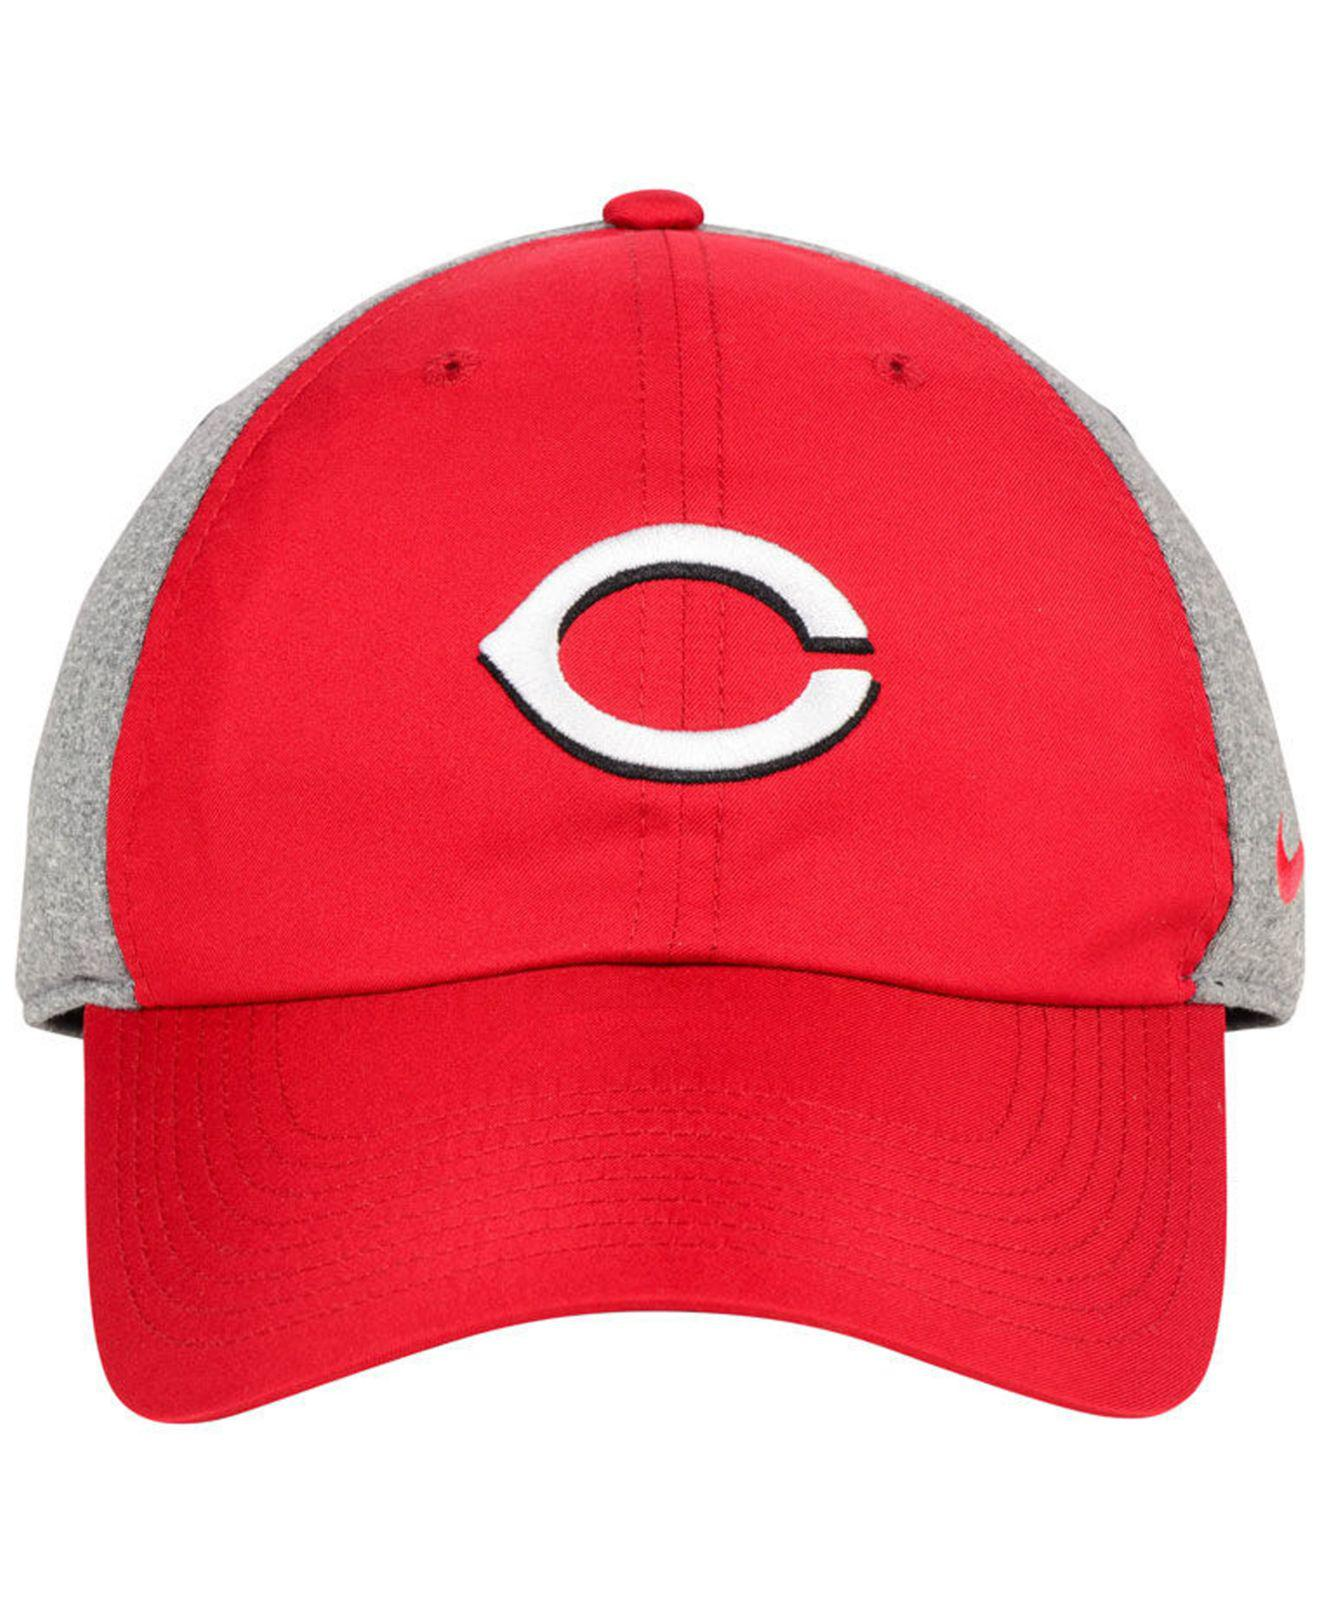 quality design 66785 61b00 ... where can i buy lyst nike cincinnati reds new day legend cap in red for  men